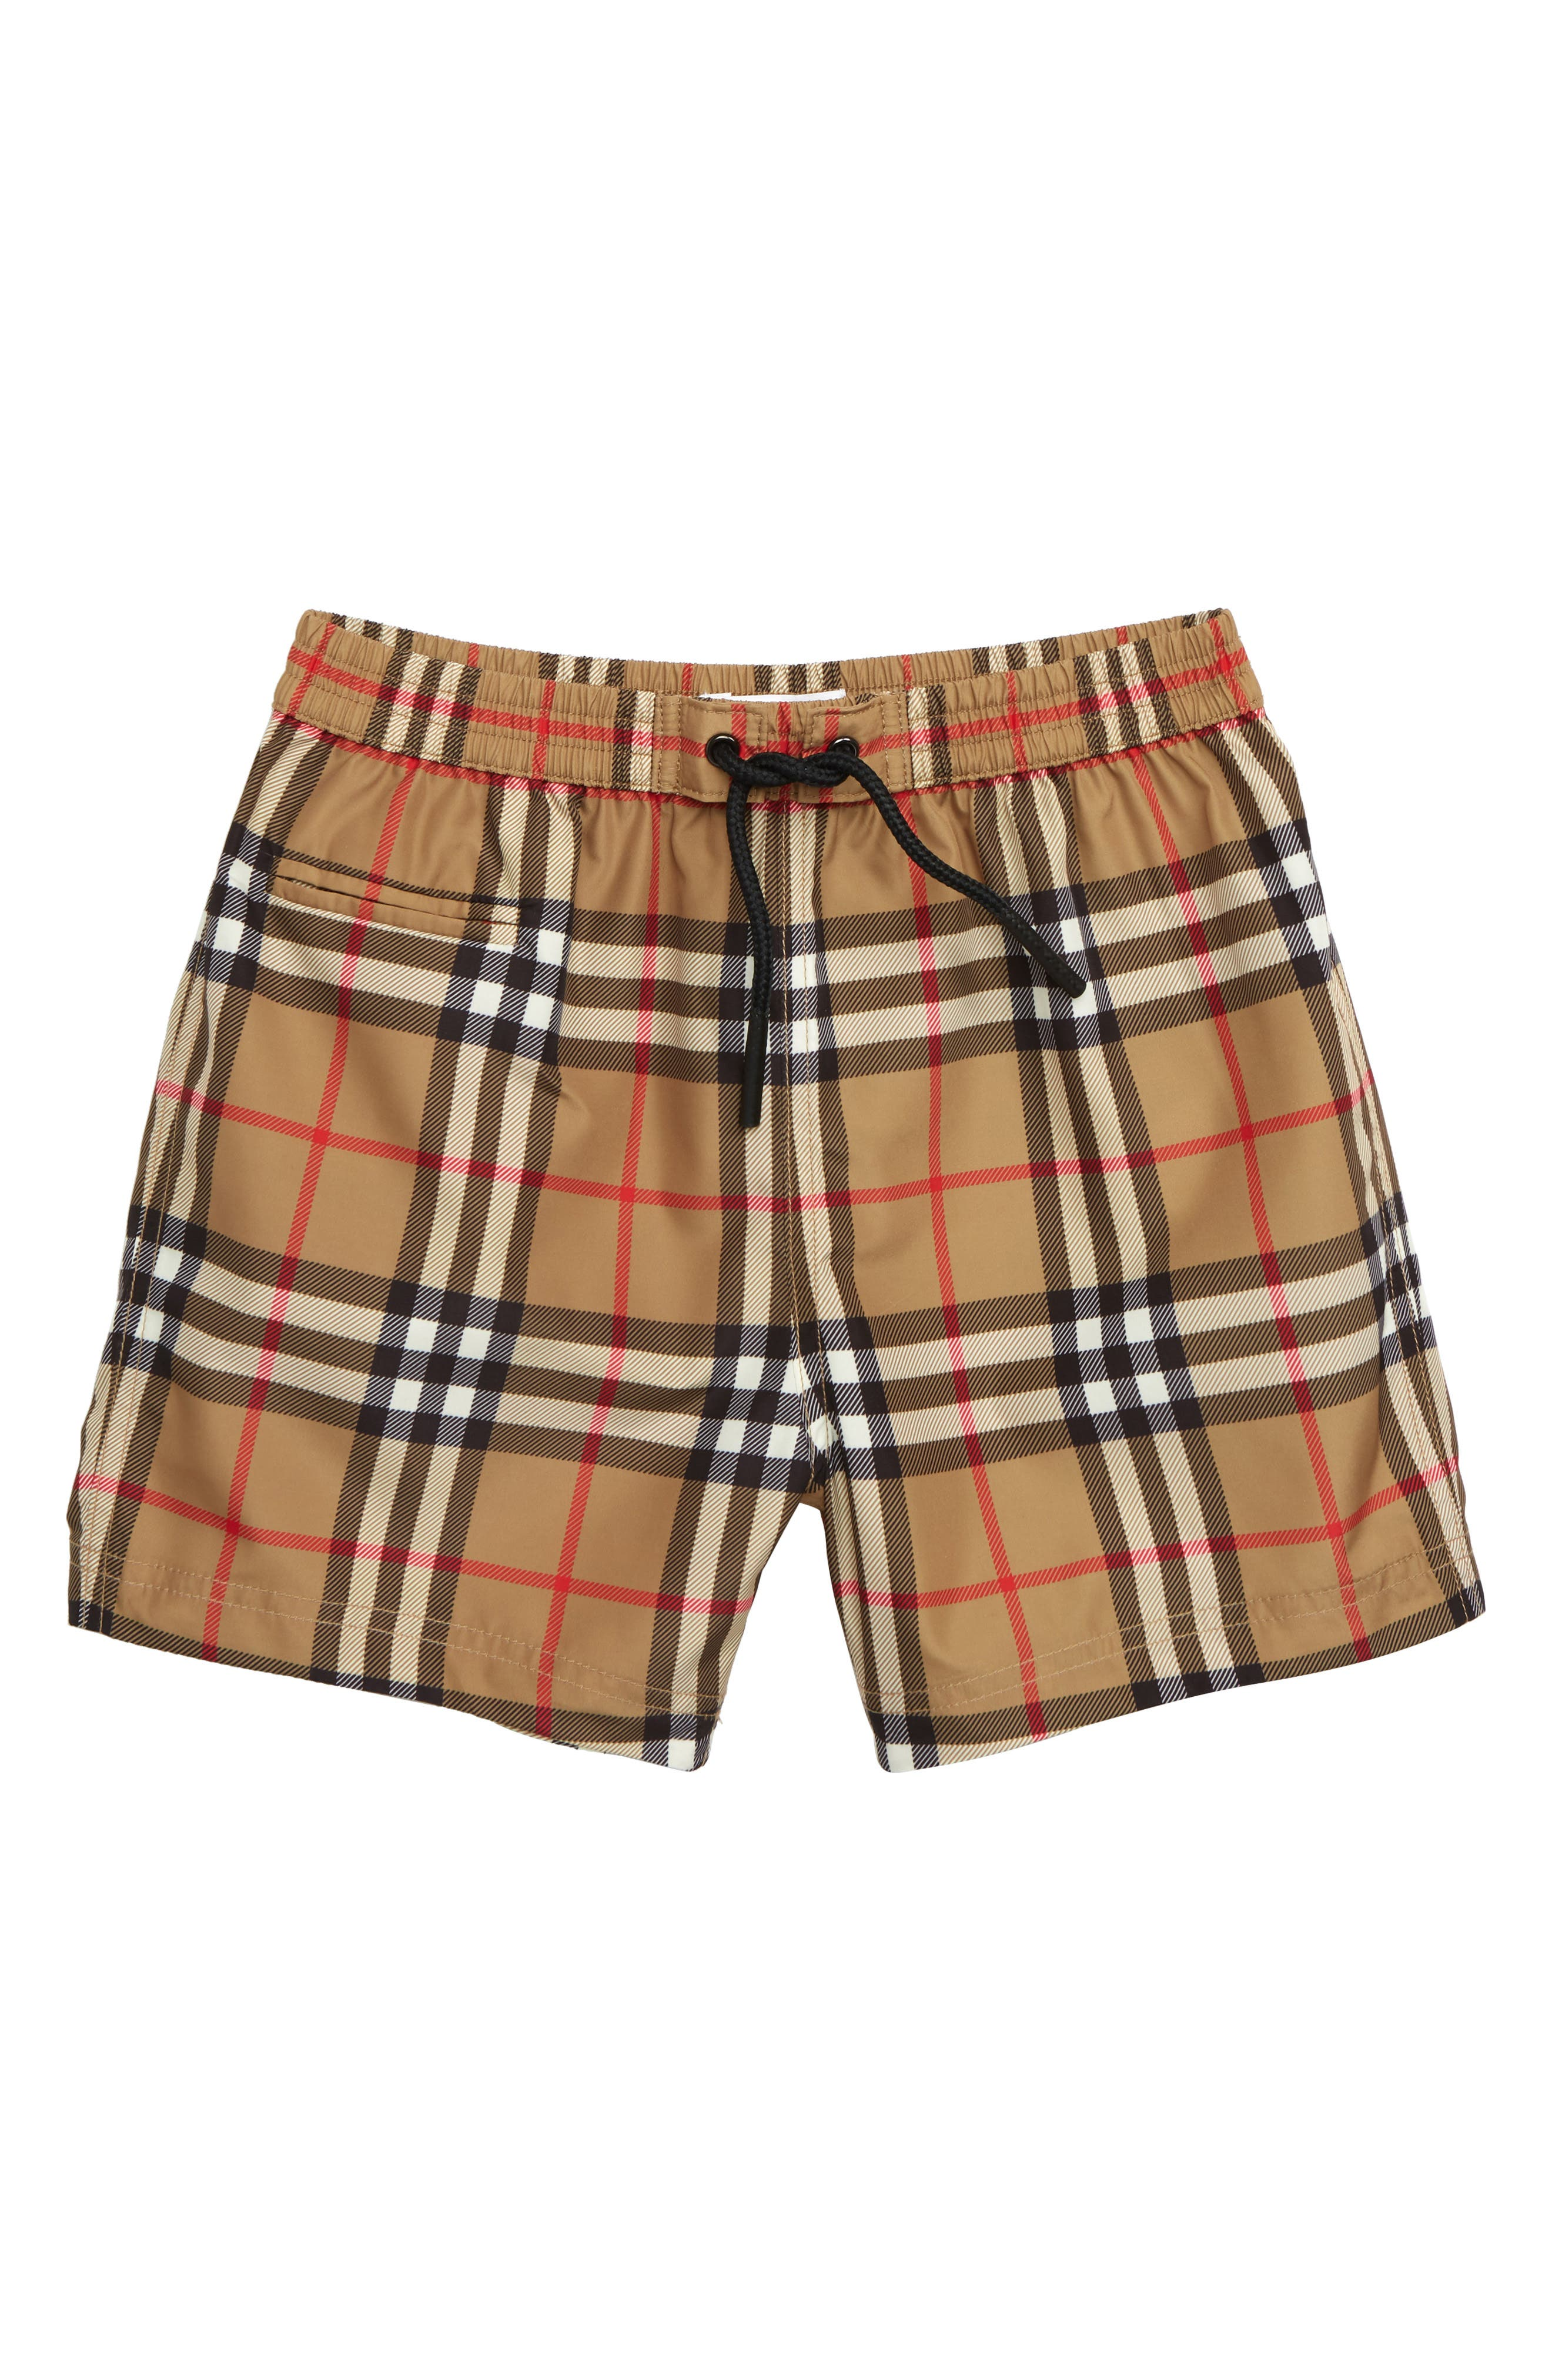 BURBERRY, Galvin Check Swim Trunks, Main thumbnail 1, color, ANTIQUE YELLOW